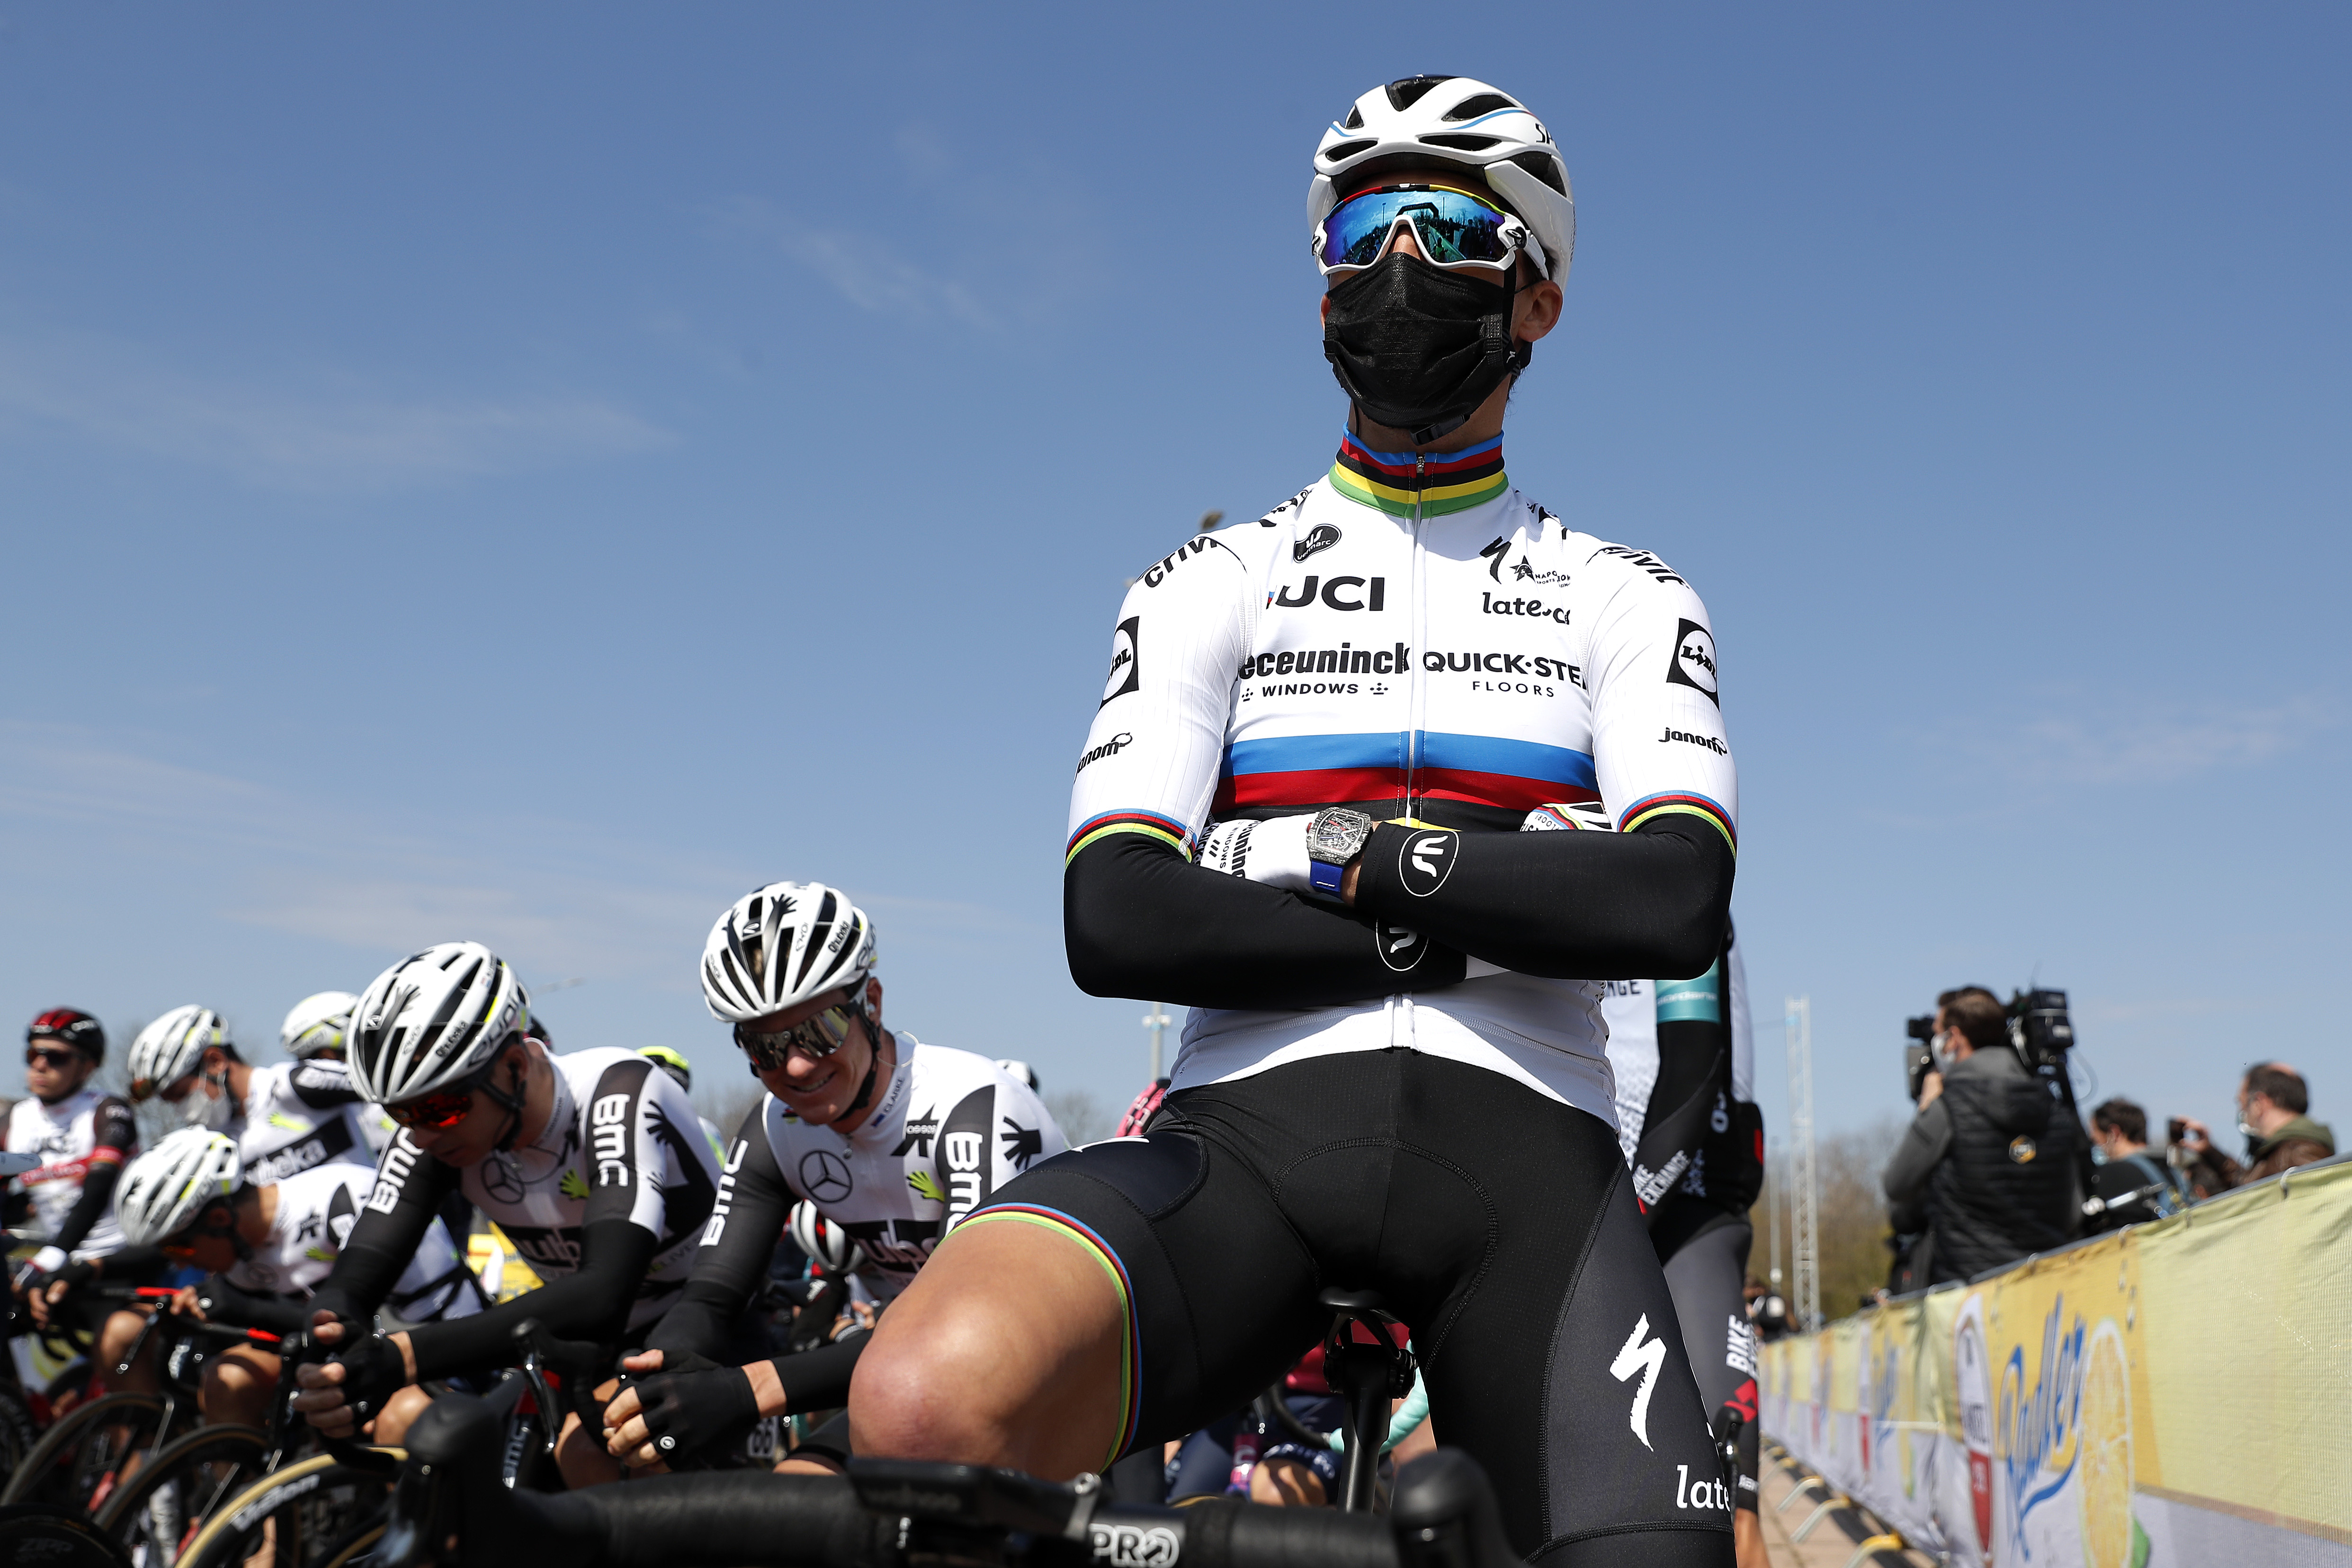 BERG NETHERLANDS APRIL 18 Start Julian Alaphilippe of France and Team Deceuninck QuickStep during the 55th Amstel Gold Race 2021 Mens Elite a 2167km race from Valkenburg to Berg en Terblijt Mask Covid safety measures Amstelgoldrace amstelgoldrace on April 18 2021 in Berg Netherlands Photo by Bas CzerwinskiGetty Images